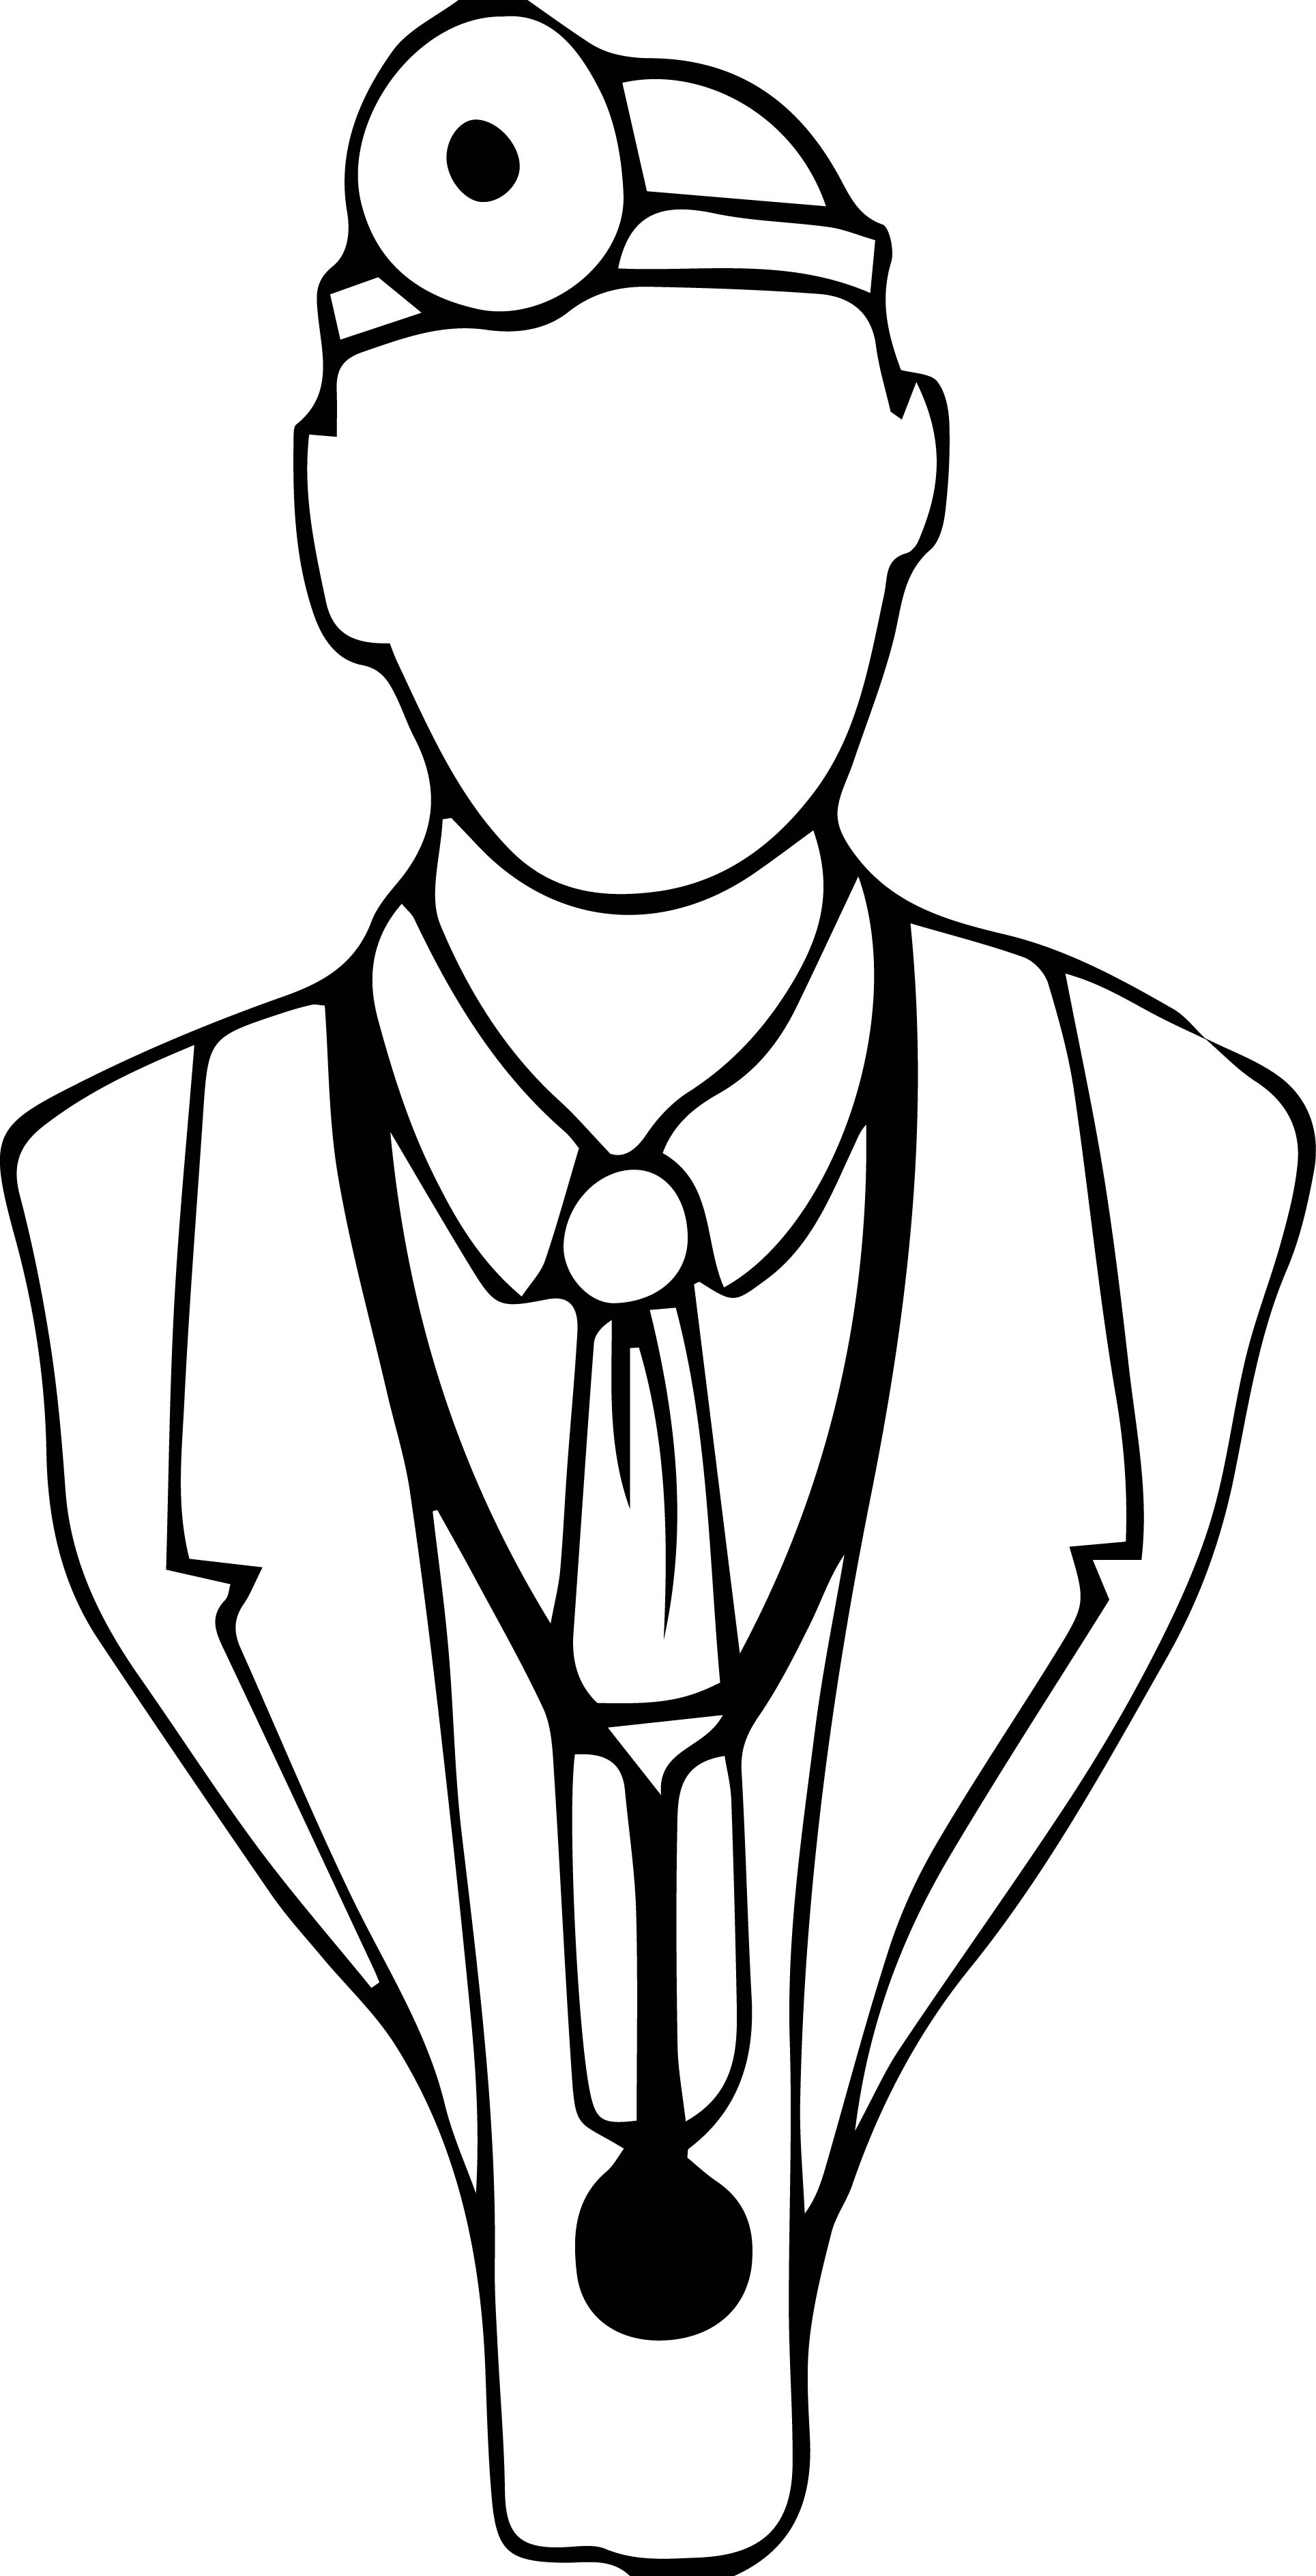 Doctor Silhouette Coloring Page